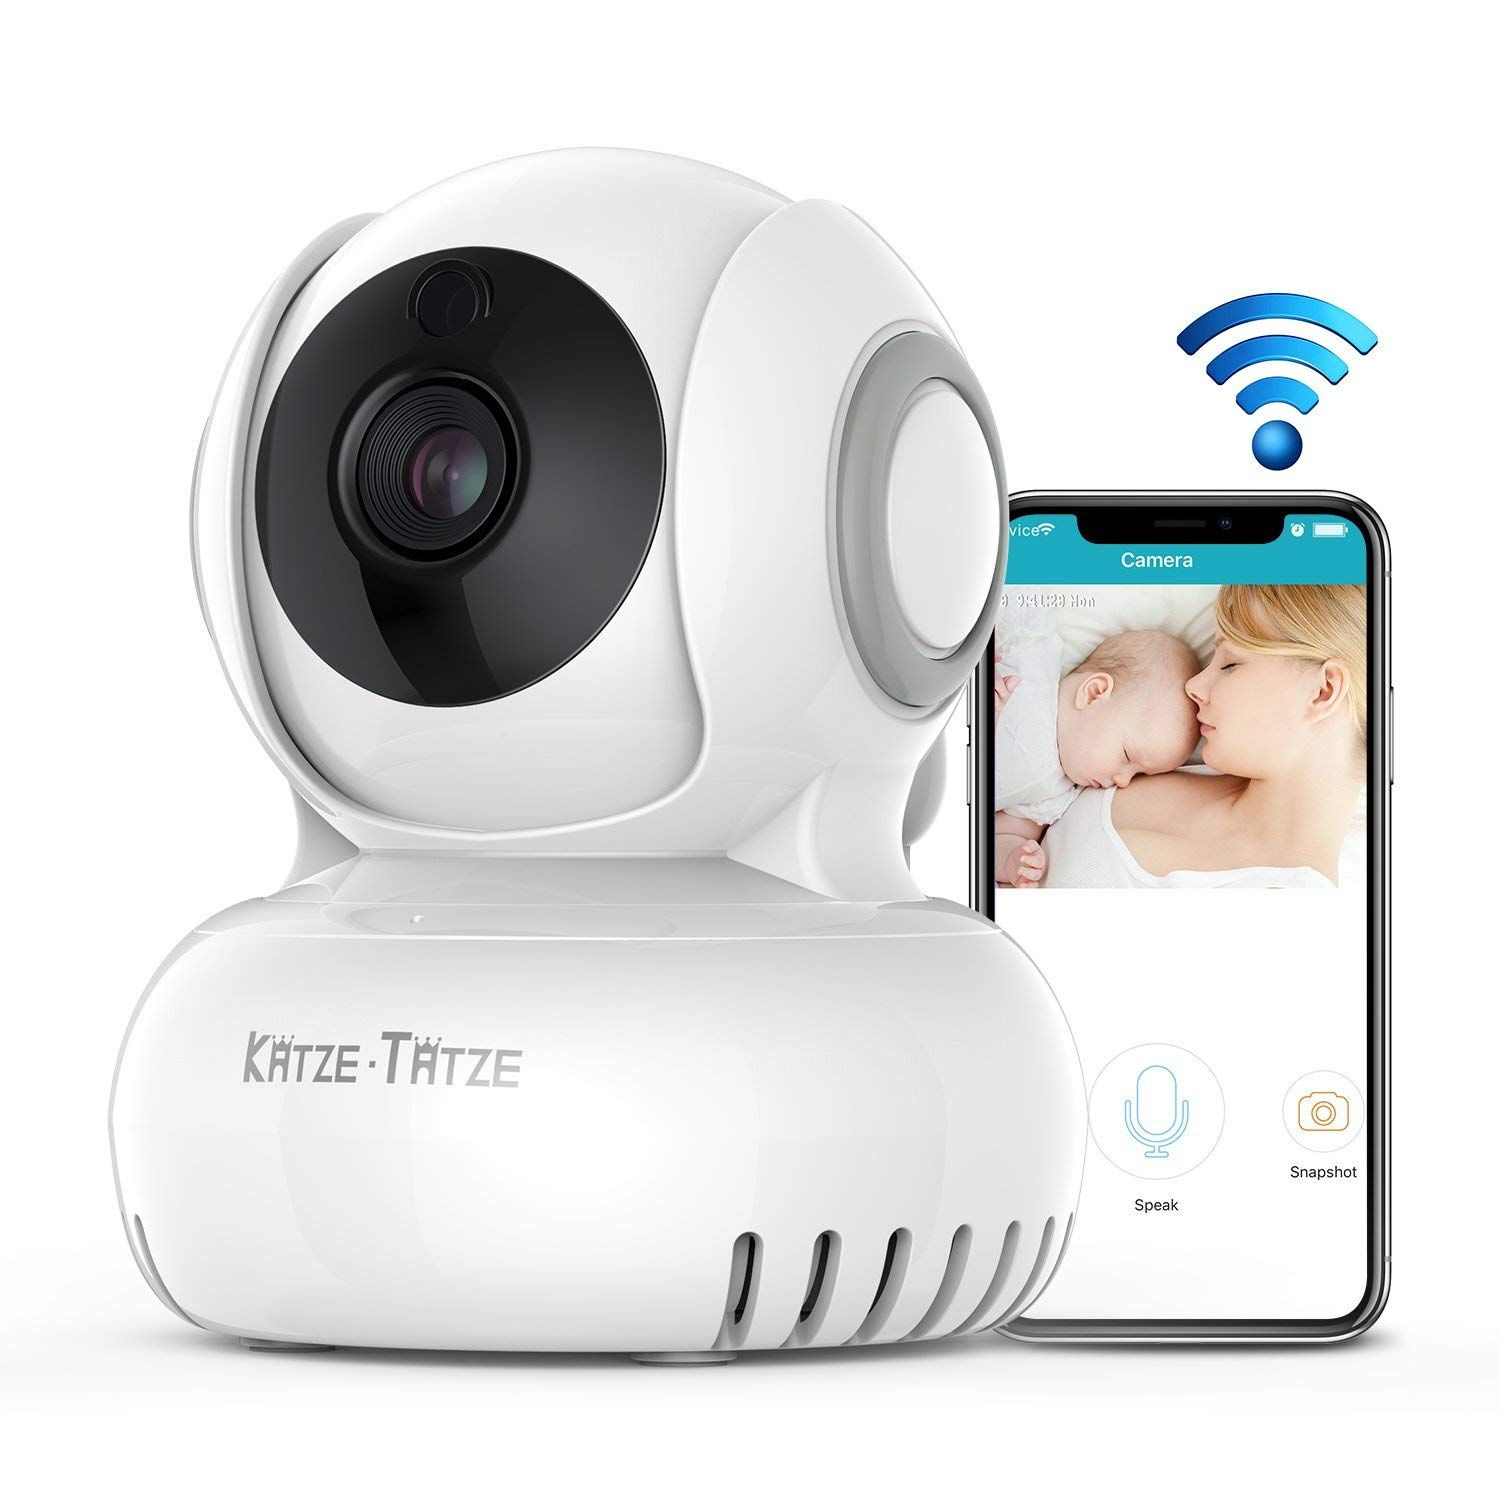 Wow! What a great buy! This camera works very well, is